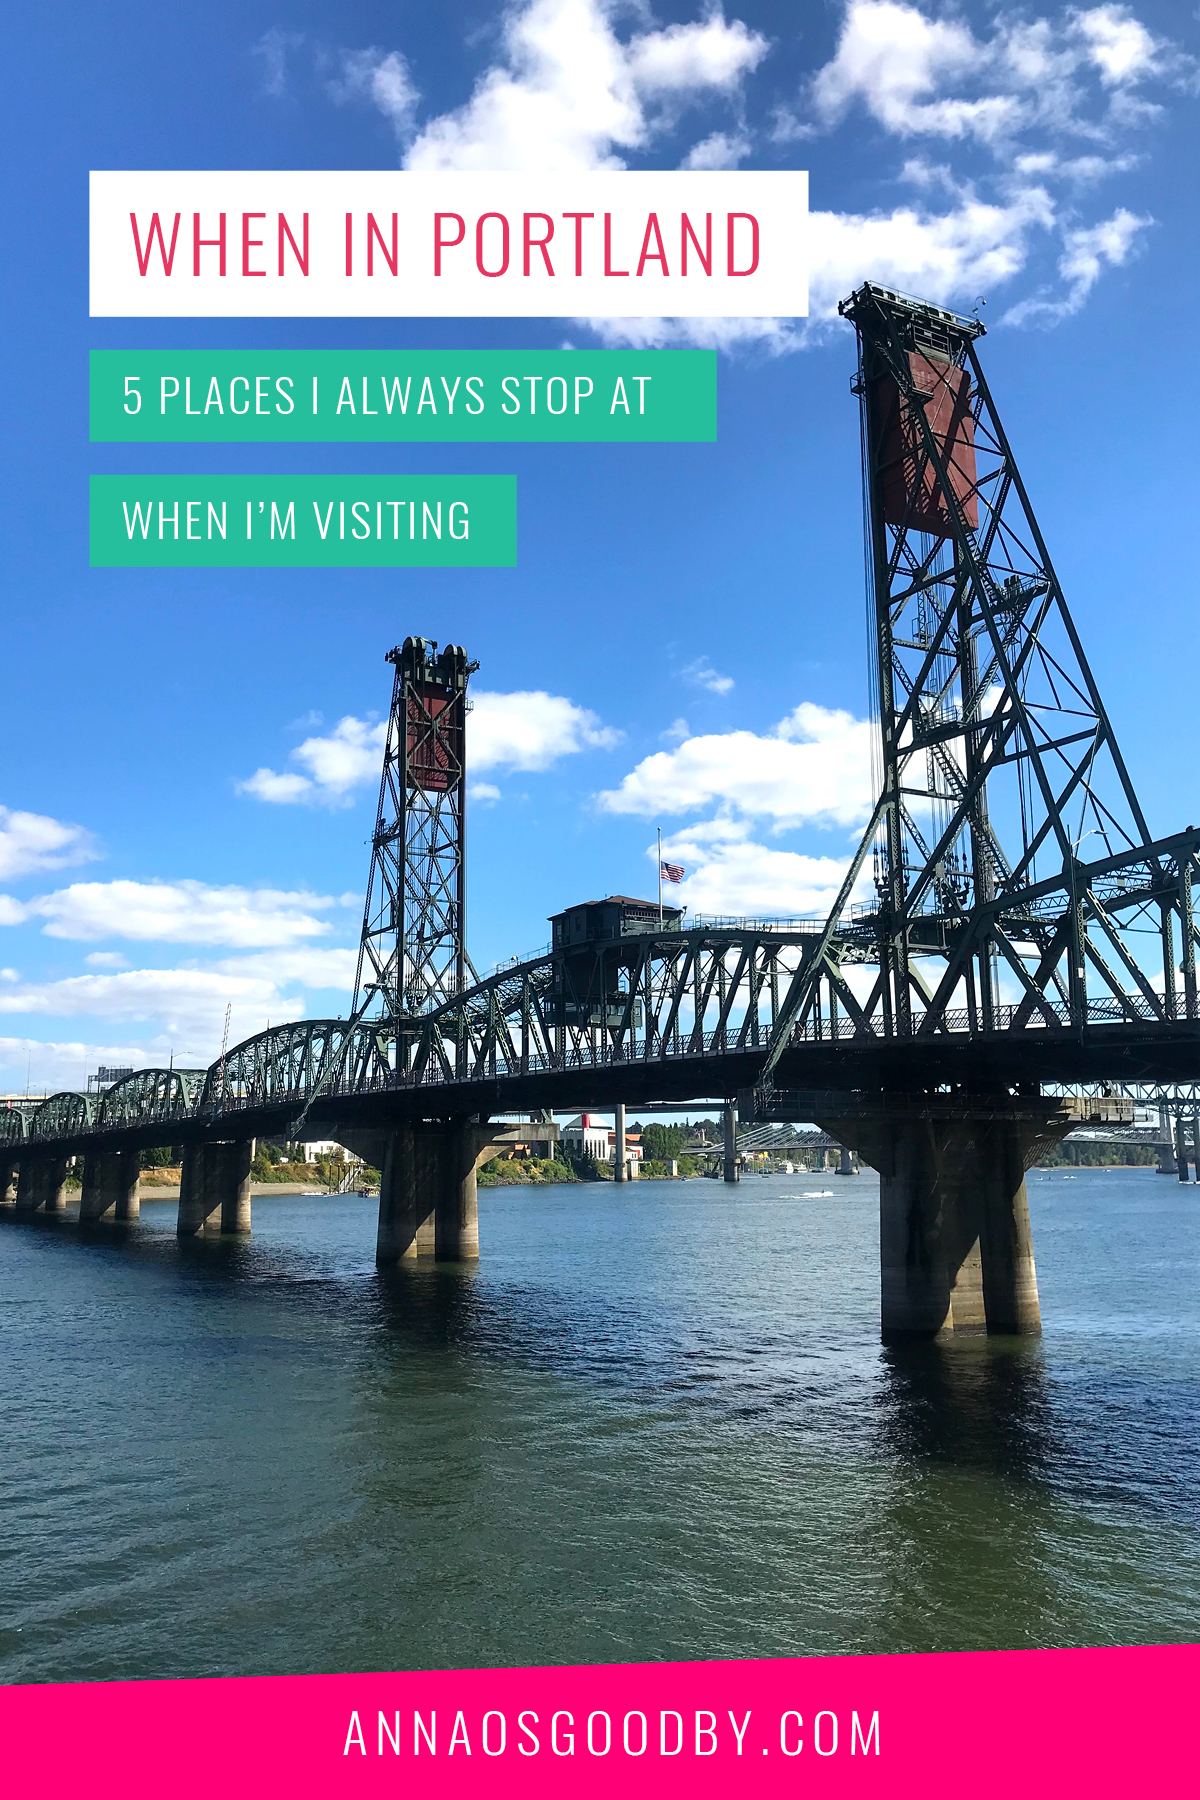 Anna Osgoodby Life + Design : When in Portland! 5 Places I Always Stop at When I'm Visiting